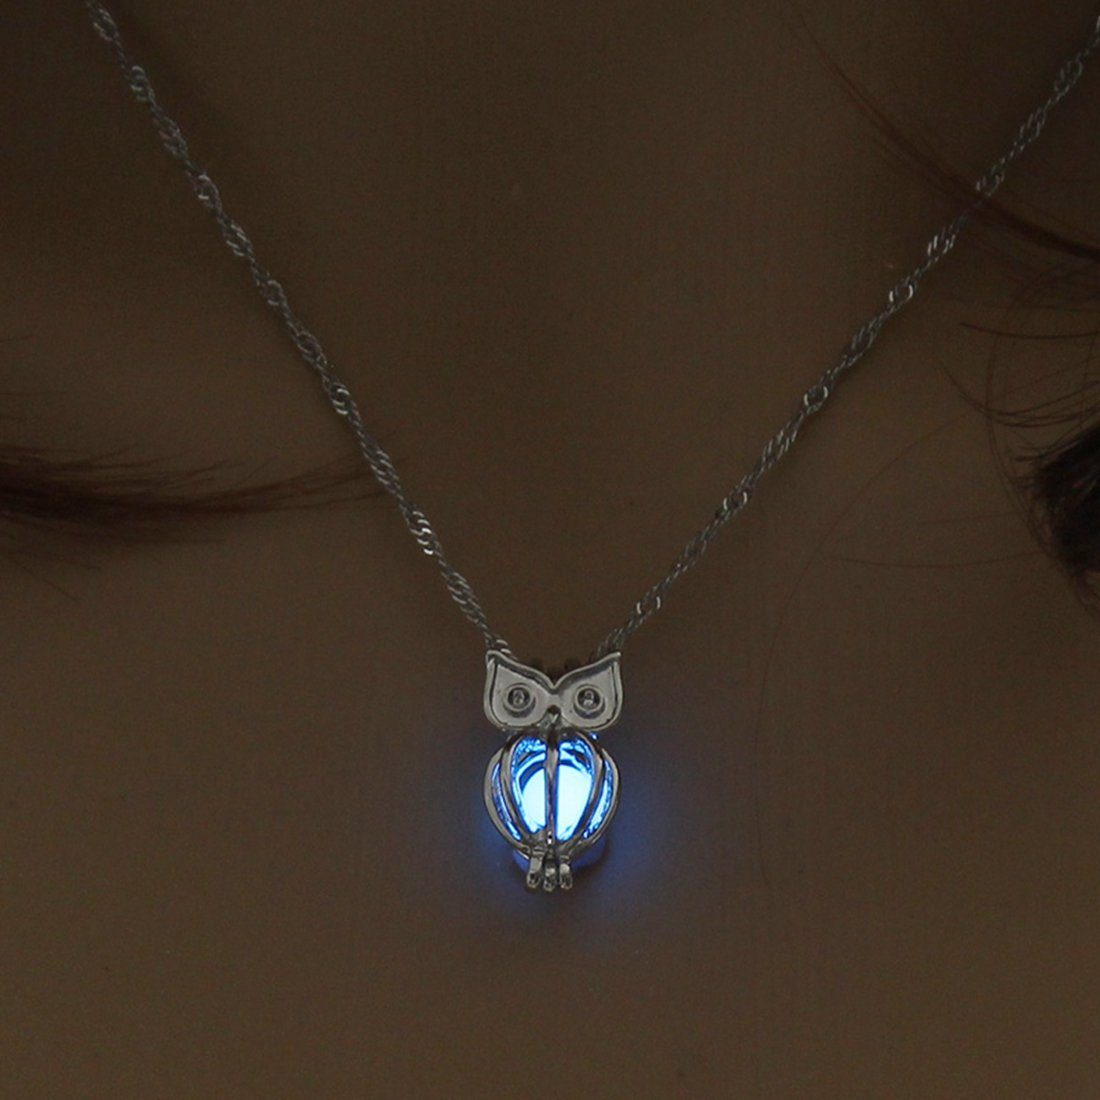 Elegant Owl Necklace - TEROF